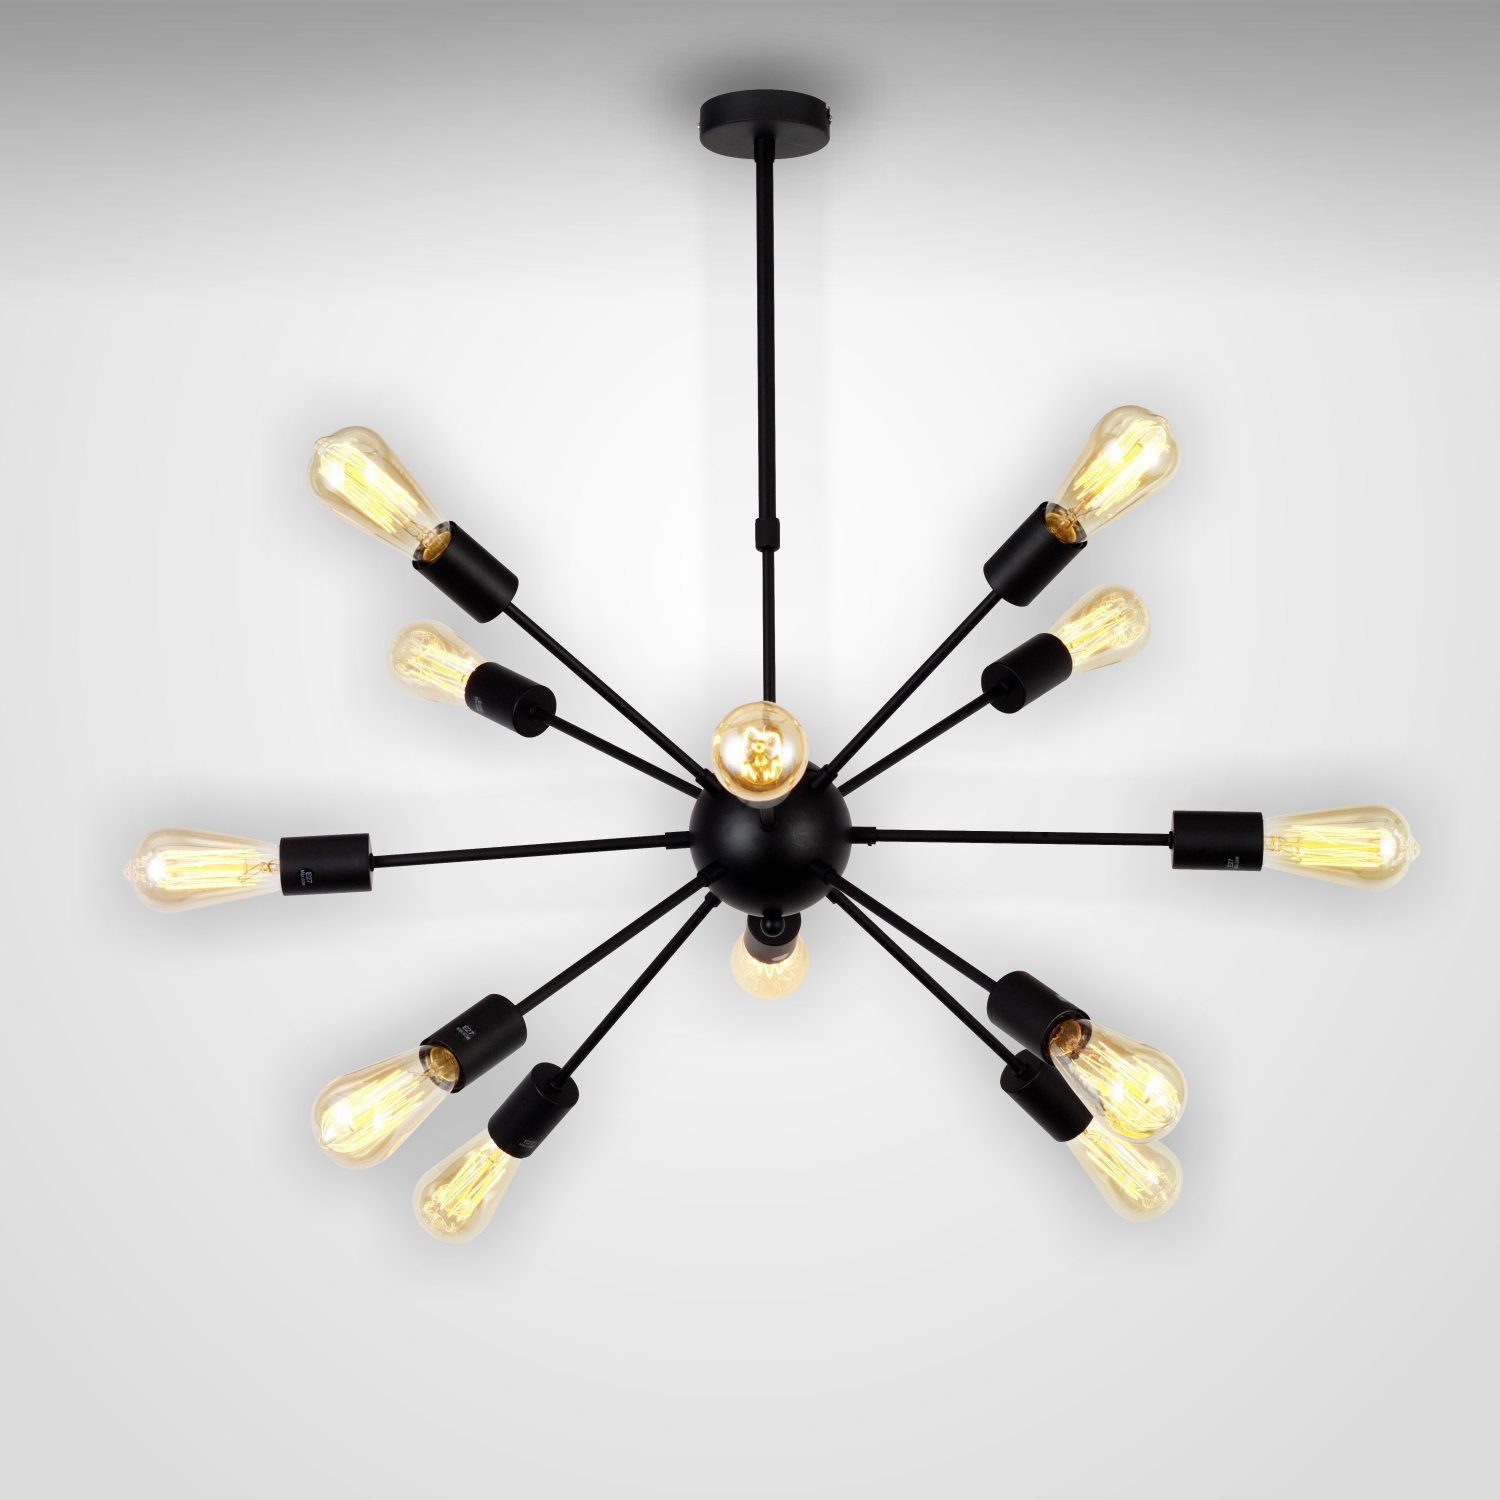 Chandelier Black  12 Lights Modern Lighting Industrial Pendant Semi Flush  Mount